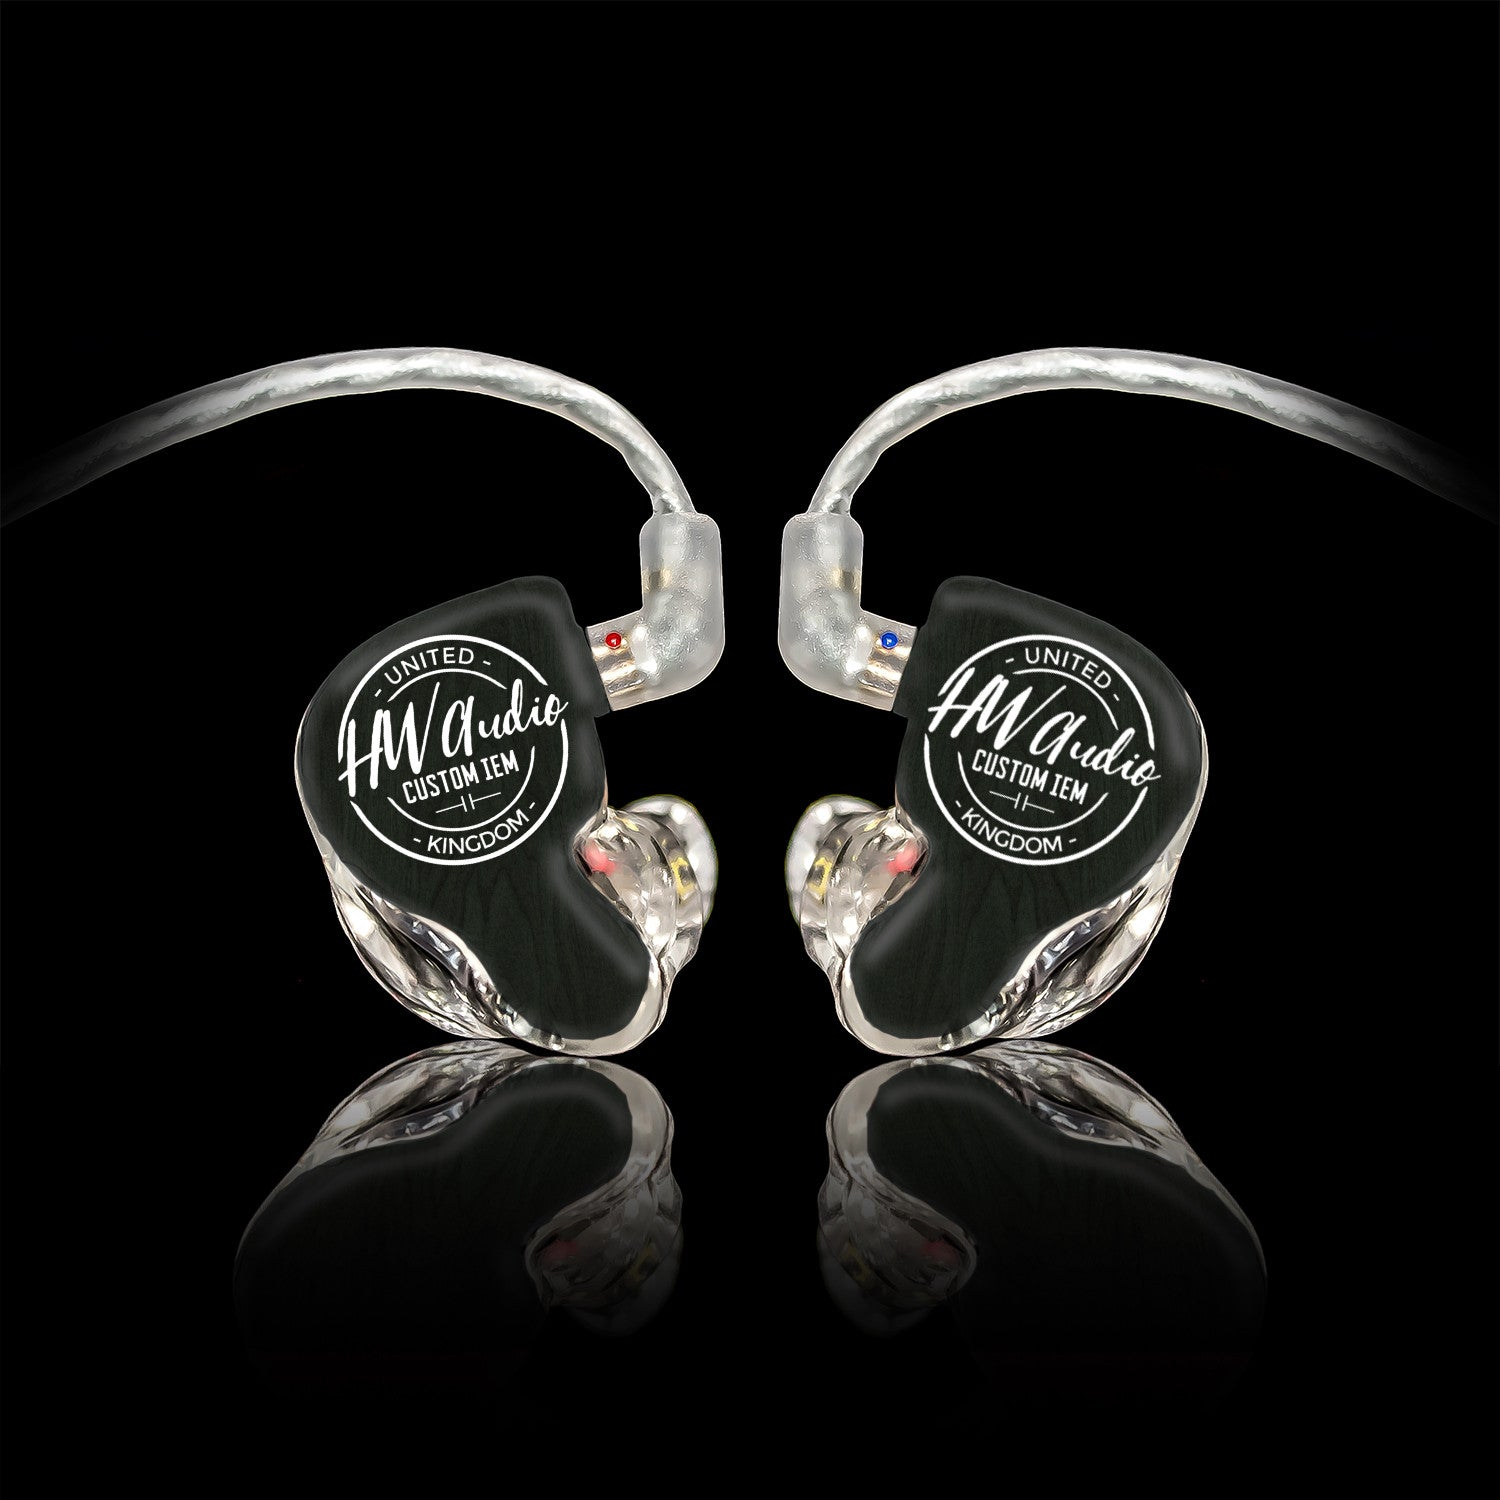 Win A Set Of iE6.A Custom In Ear Monitors